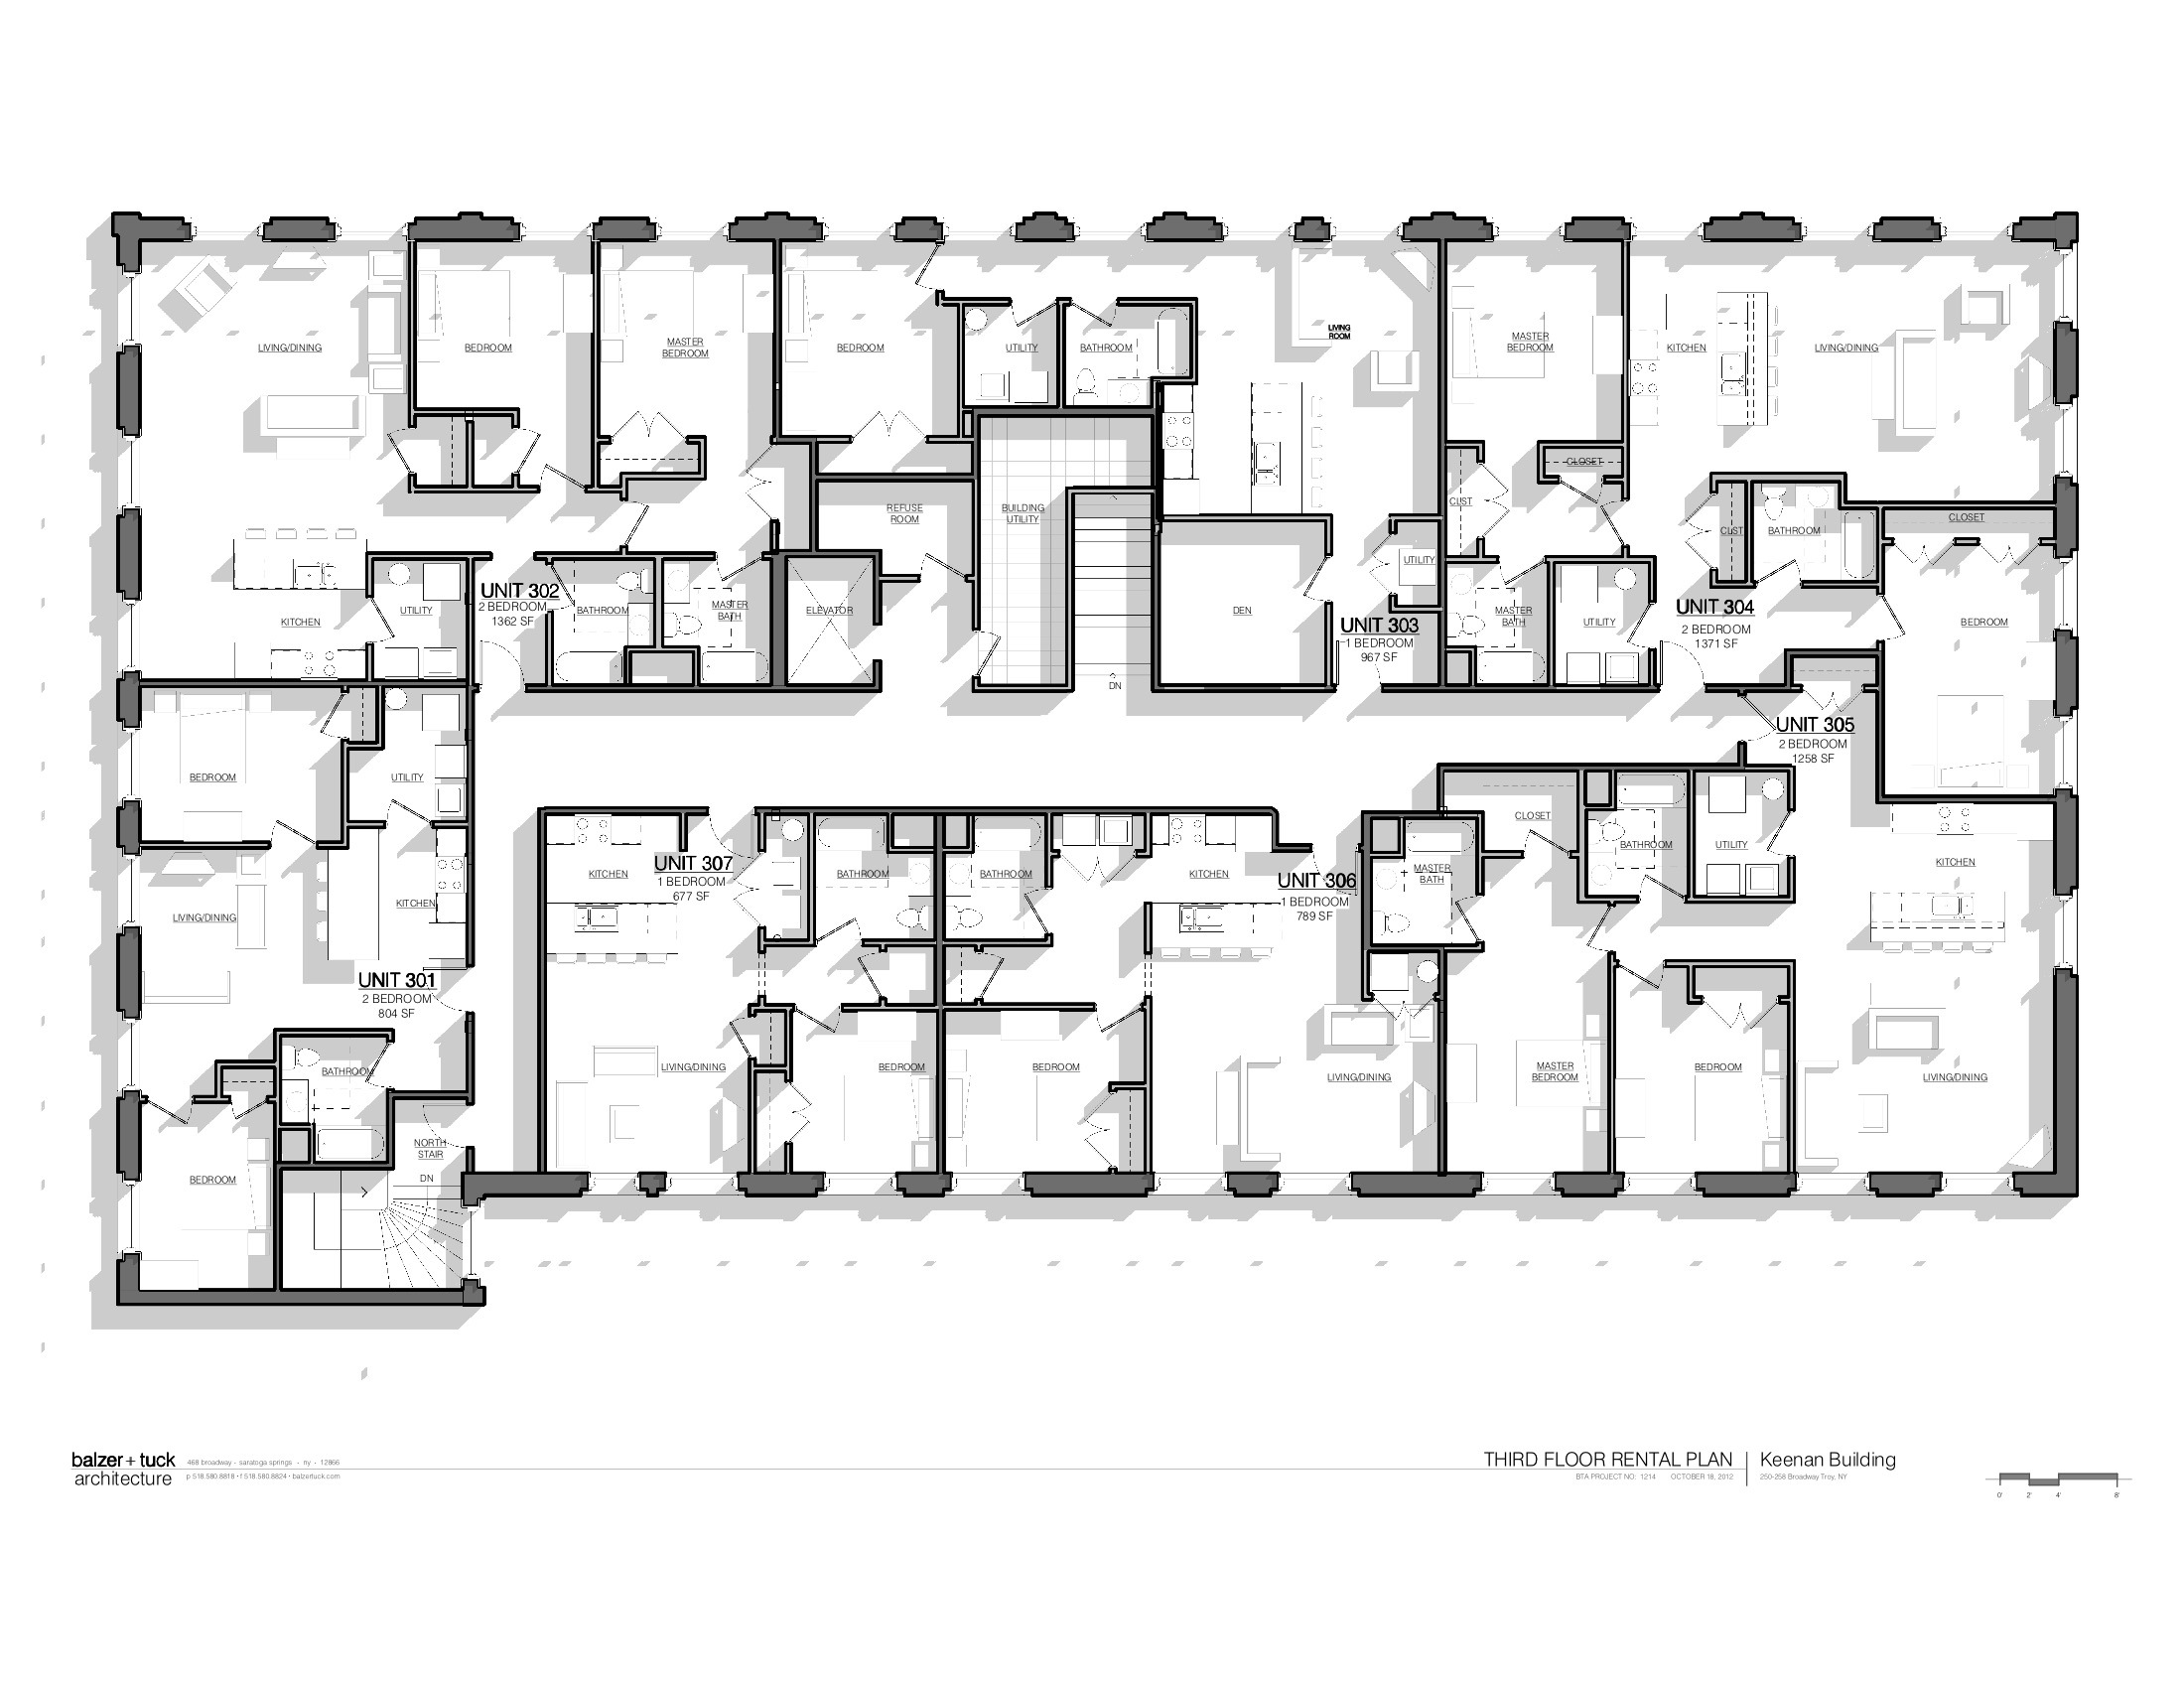 Keenan Building Floor Plans Troy New York